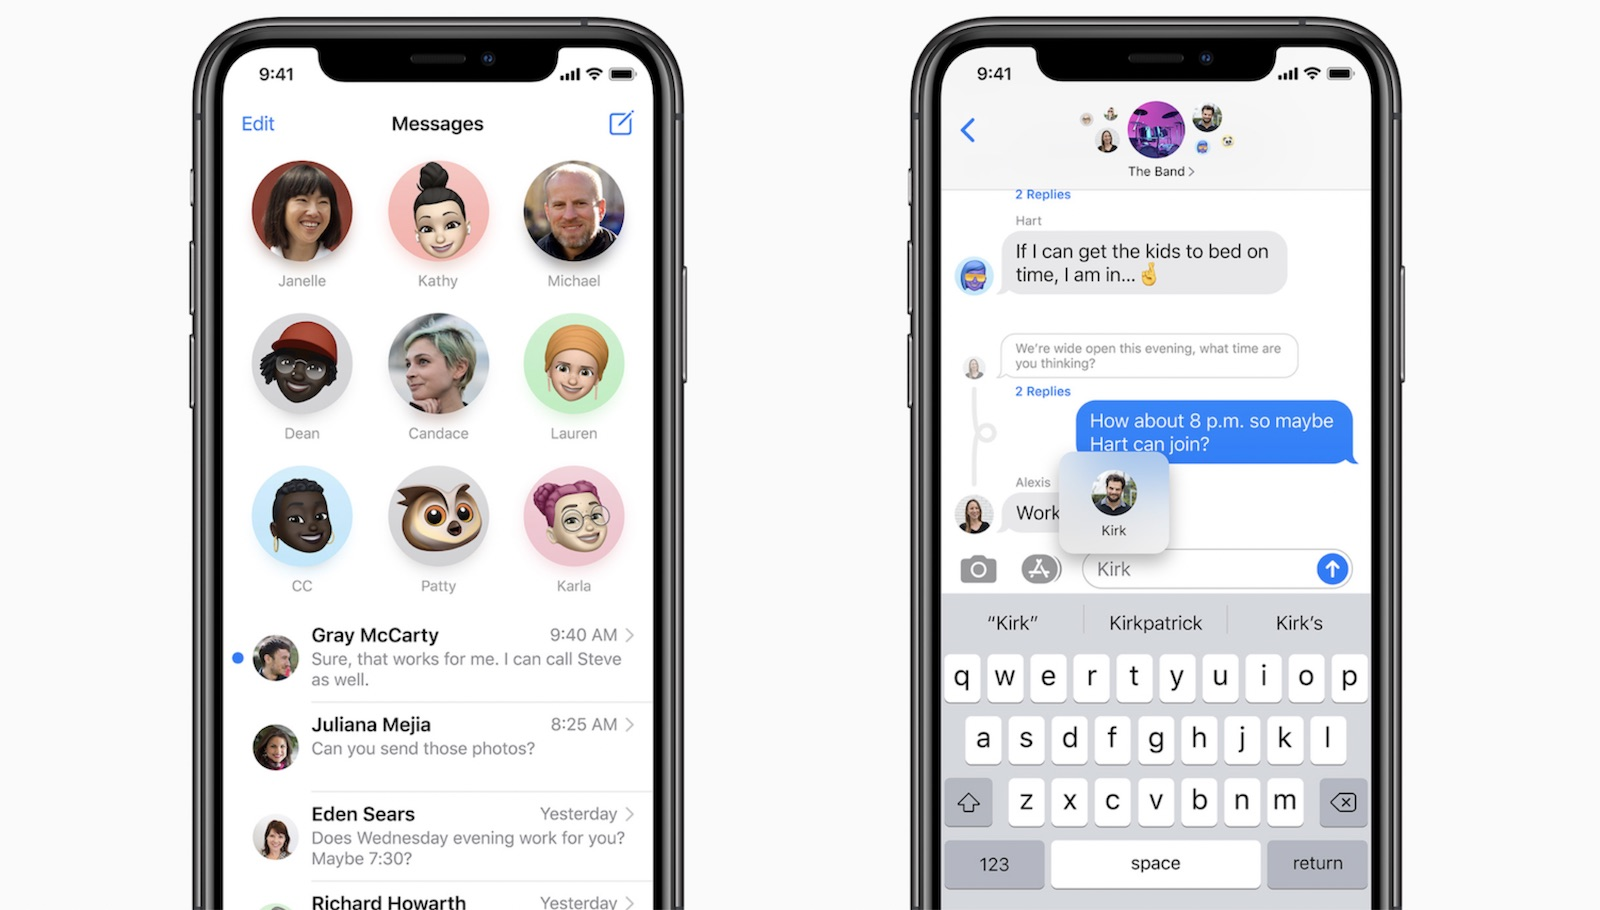 ios 14 imessage features - iOS 14: Every thing We Know